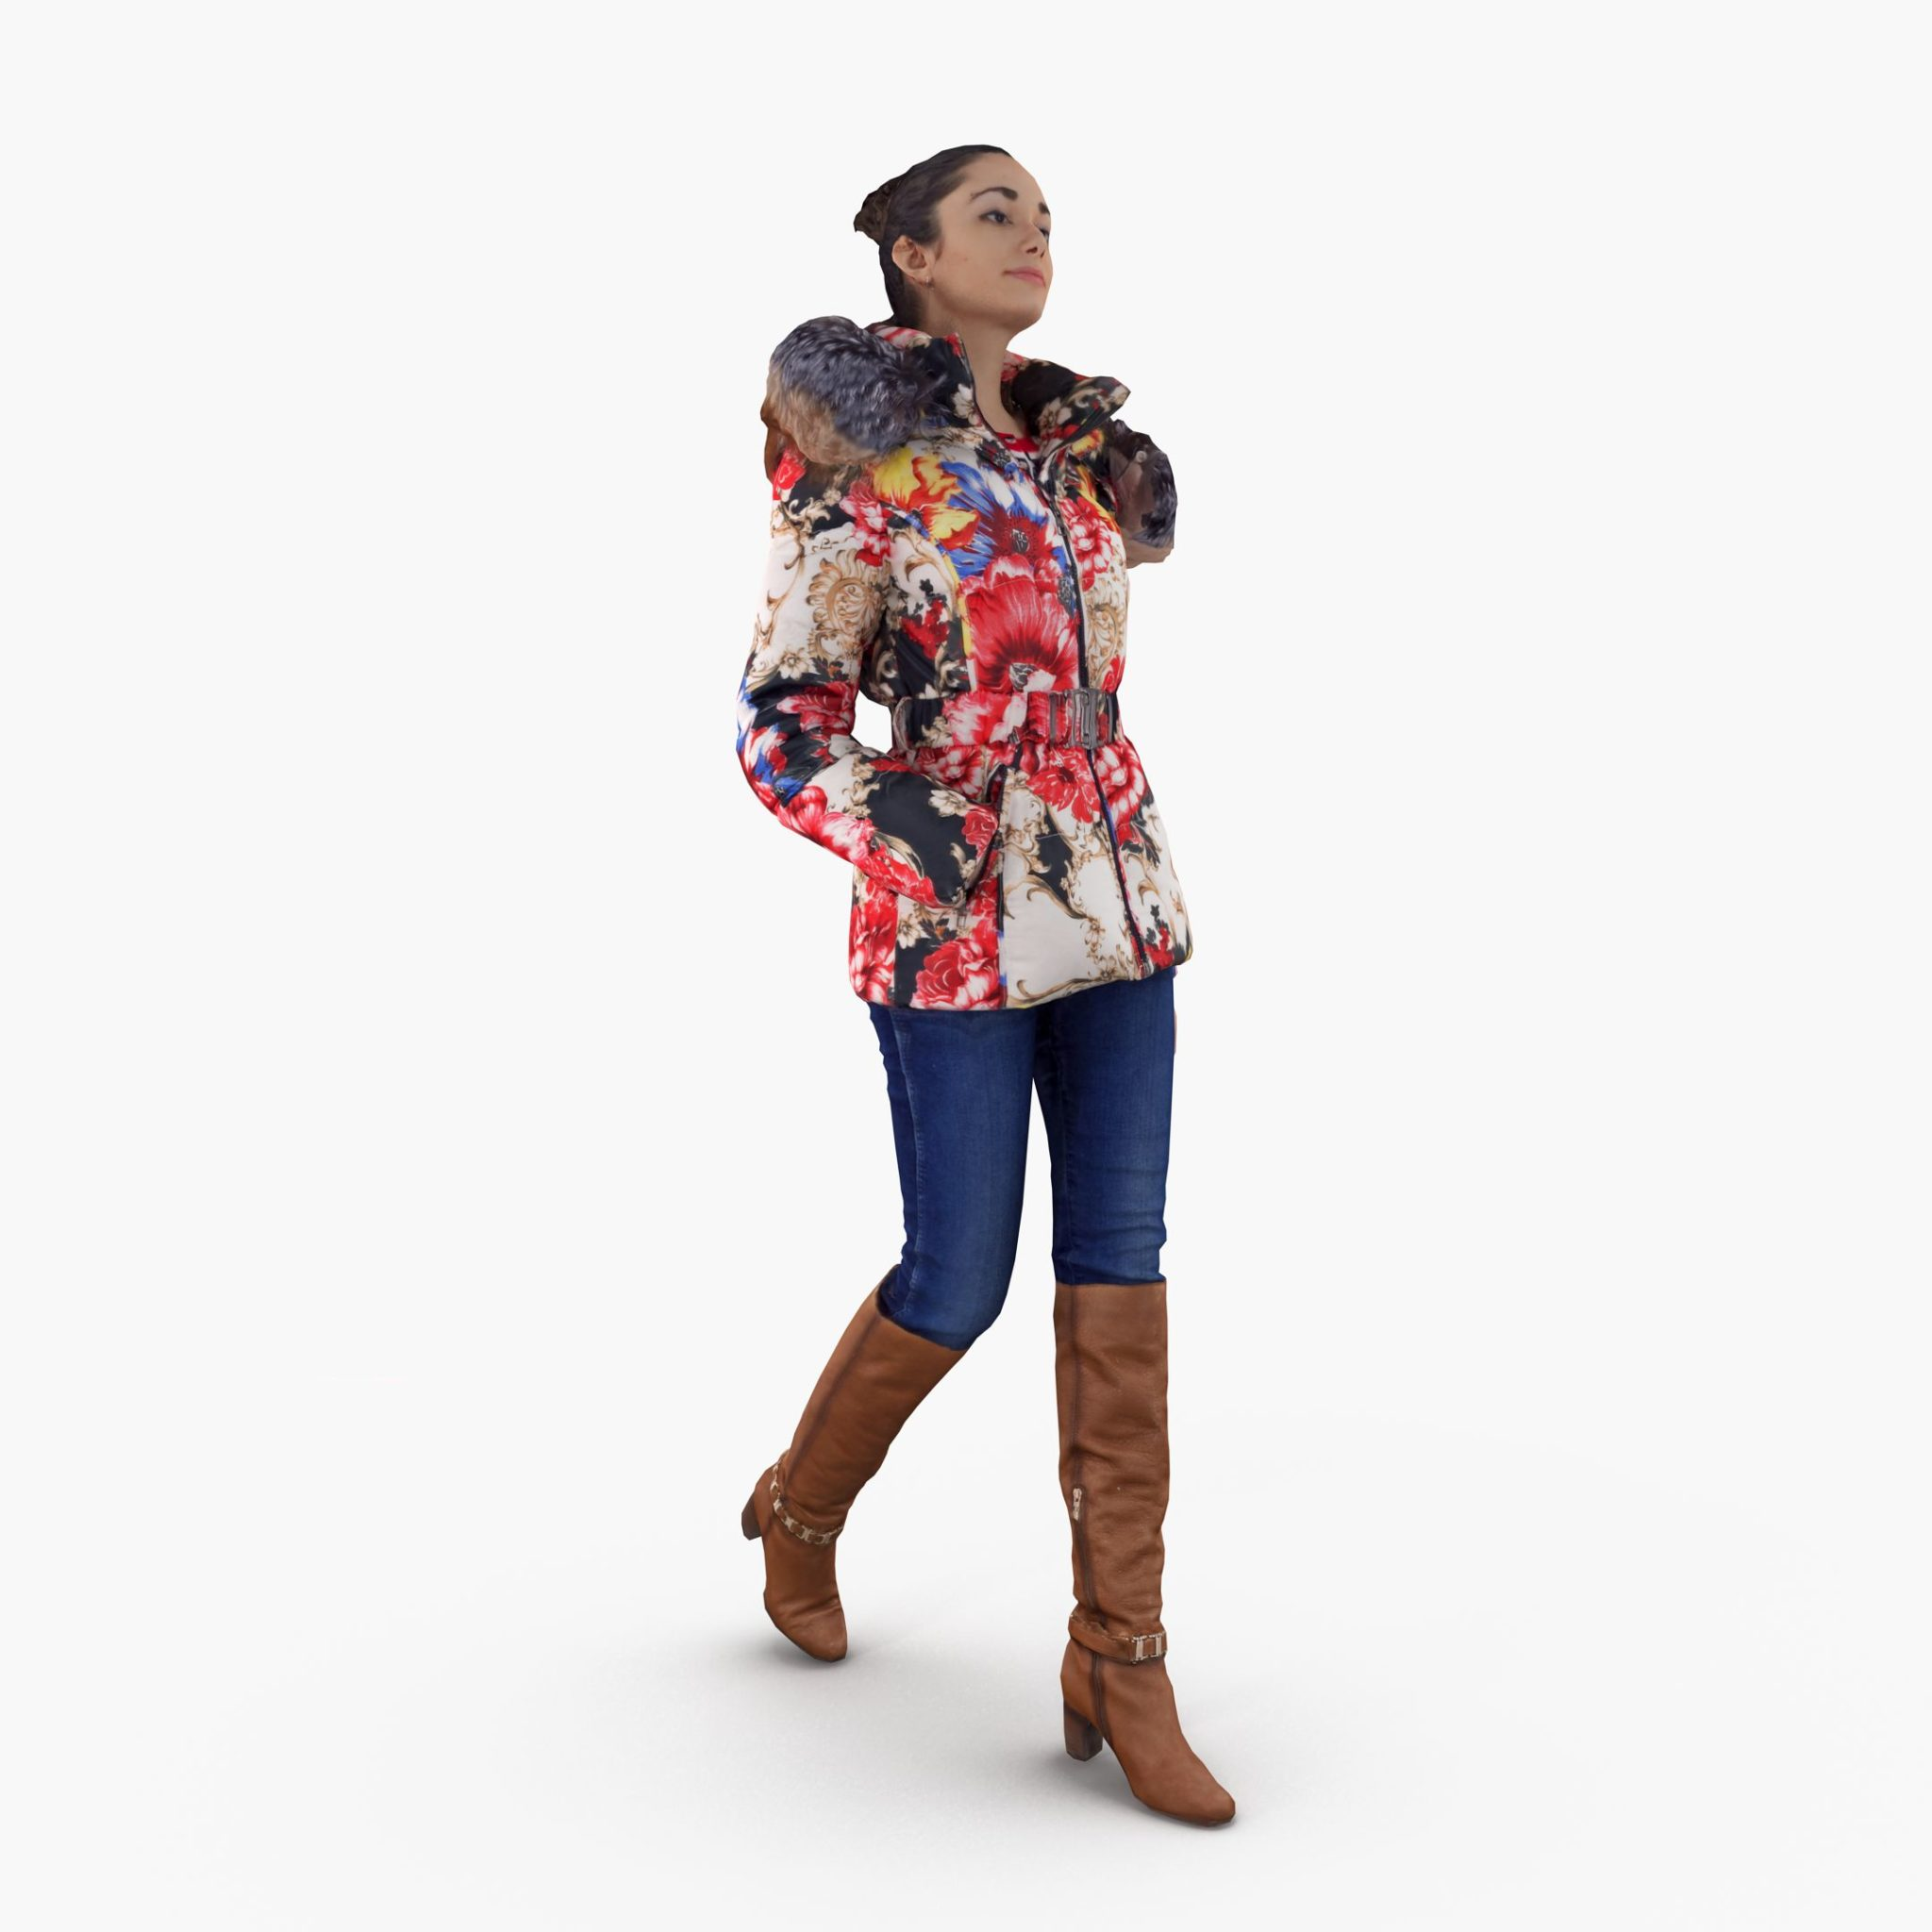 City Girl in Jacket 3D Model | 3DTree Scanning Studio